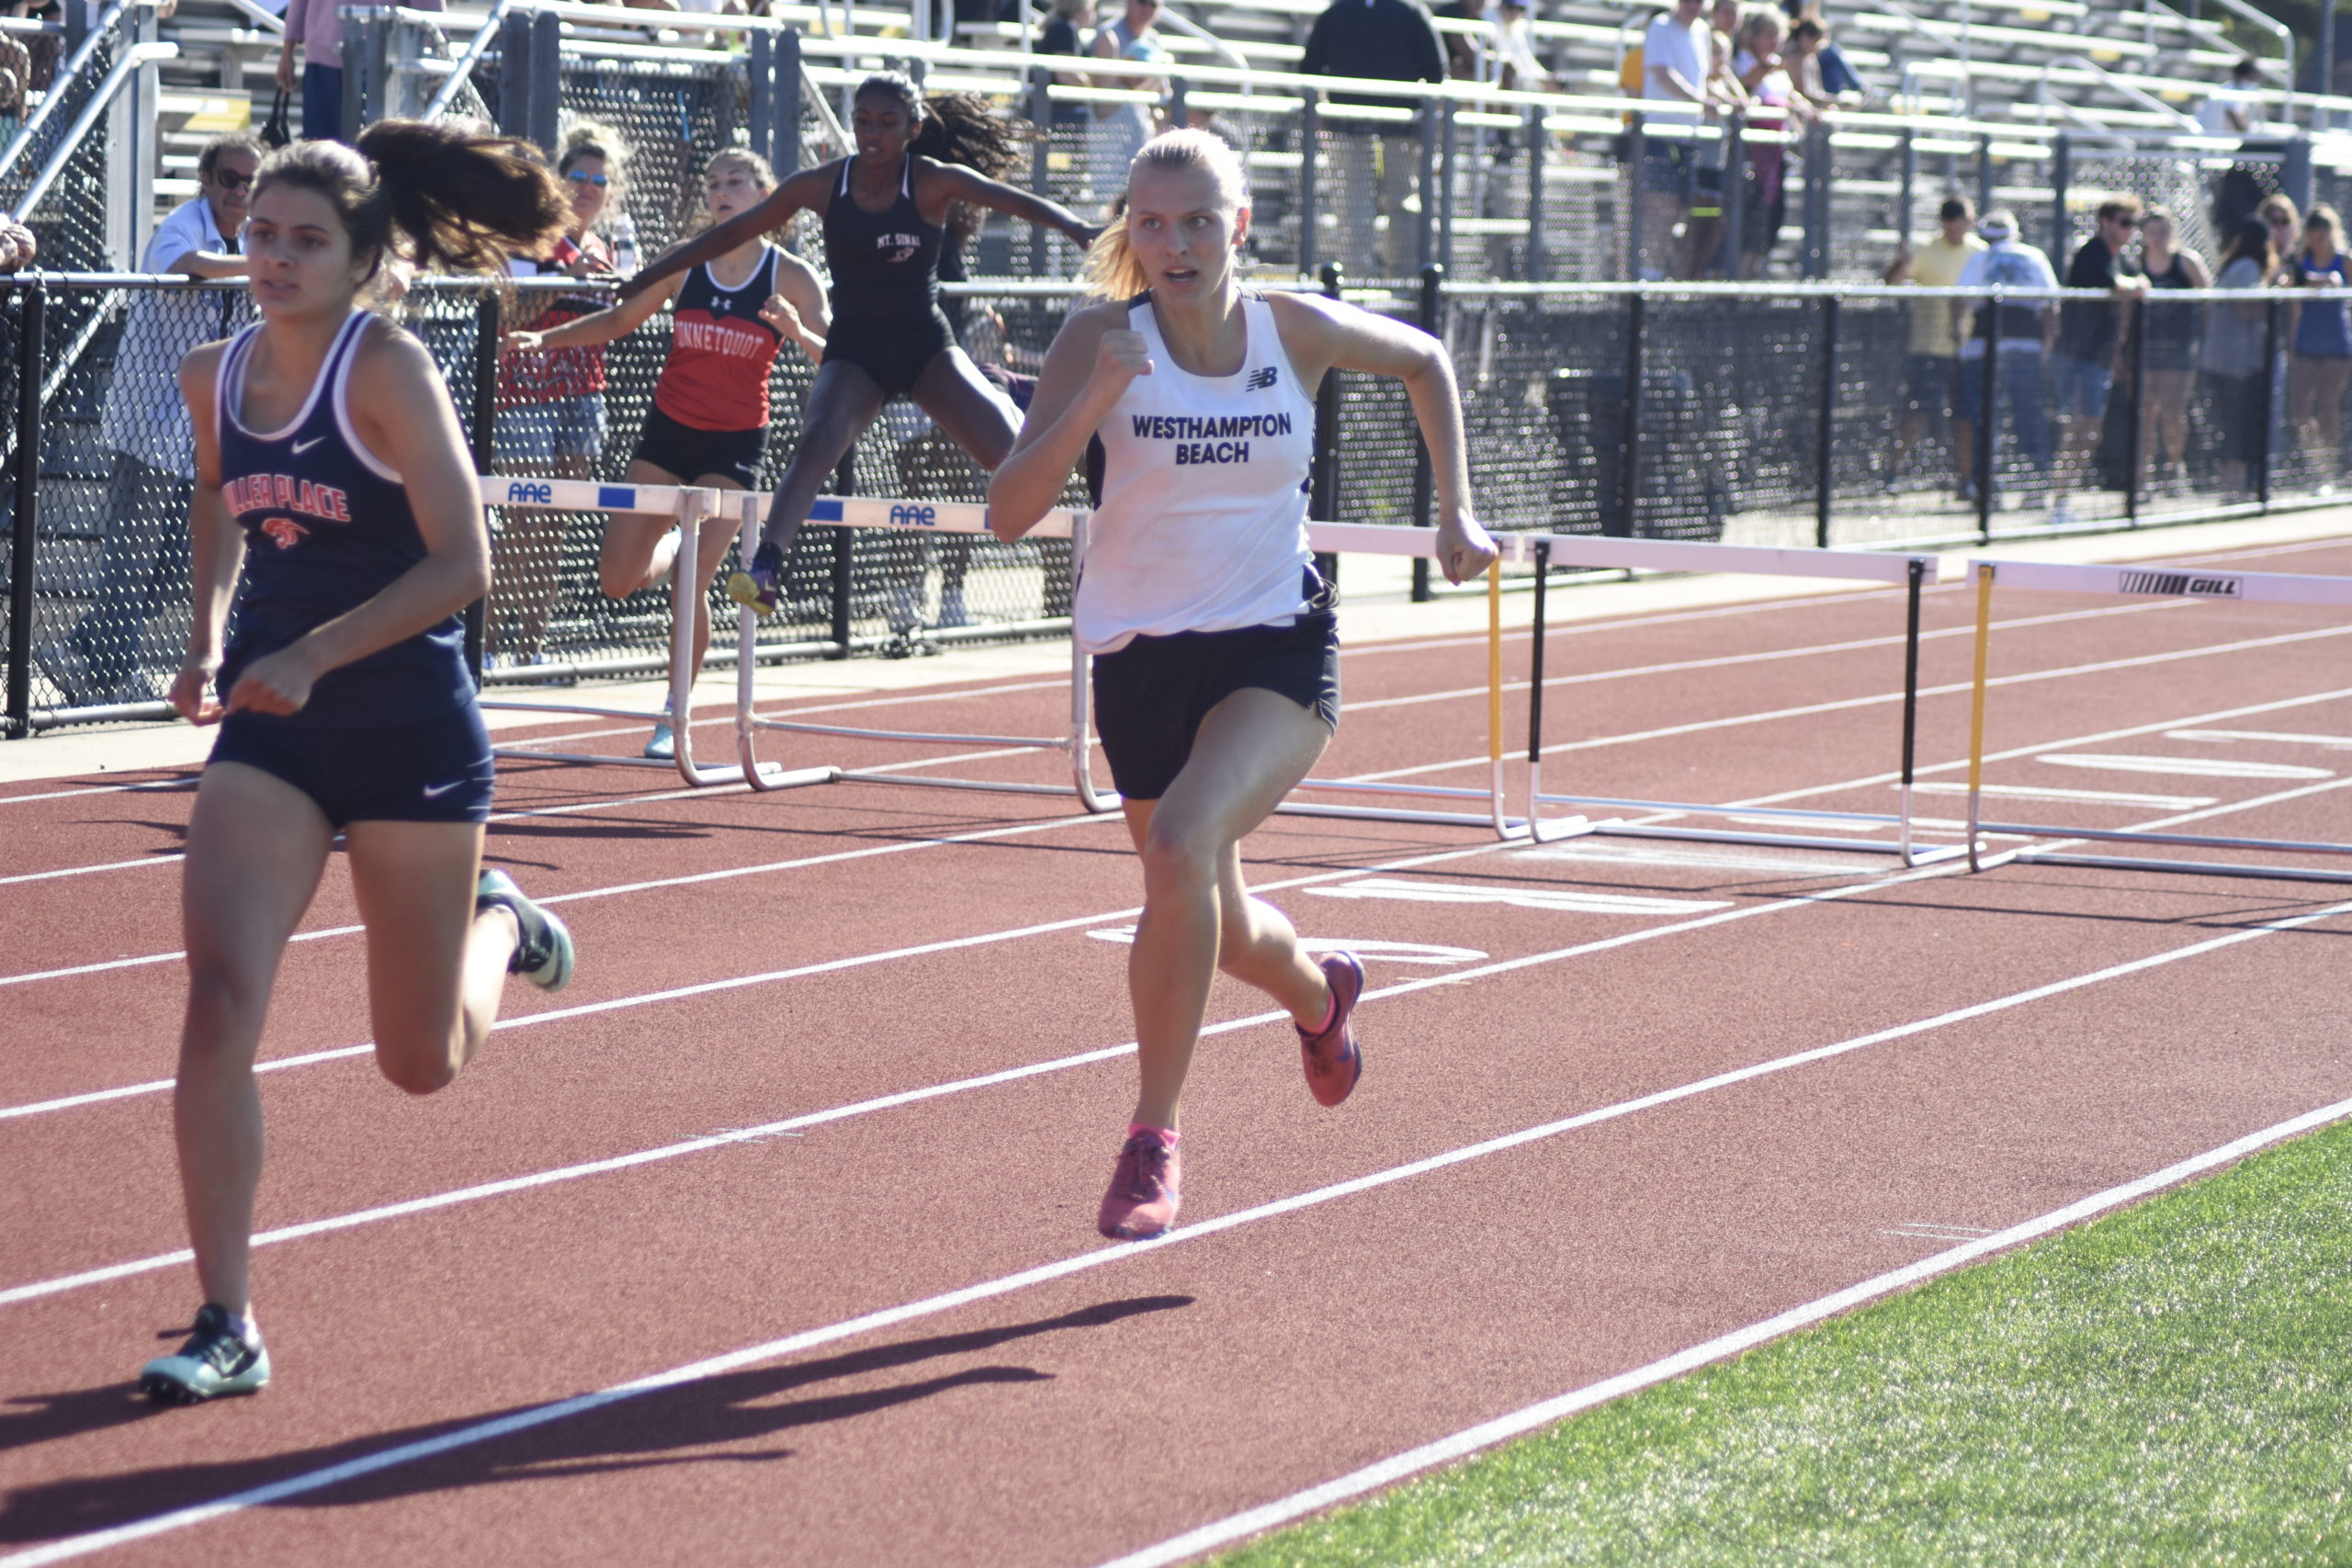 Westhampton Beach junior Valerie Finke running down the final stretch of the 400-meter hurdles, which she placed third in.